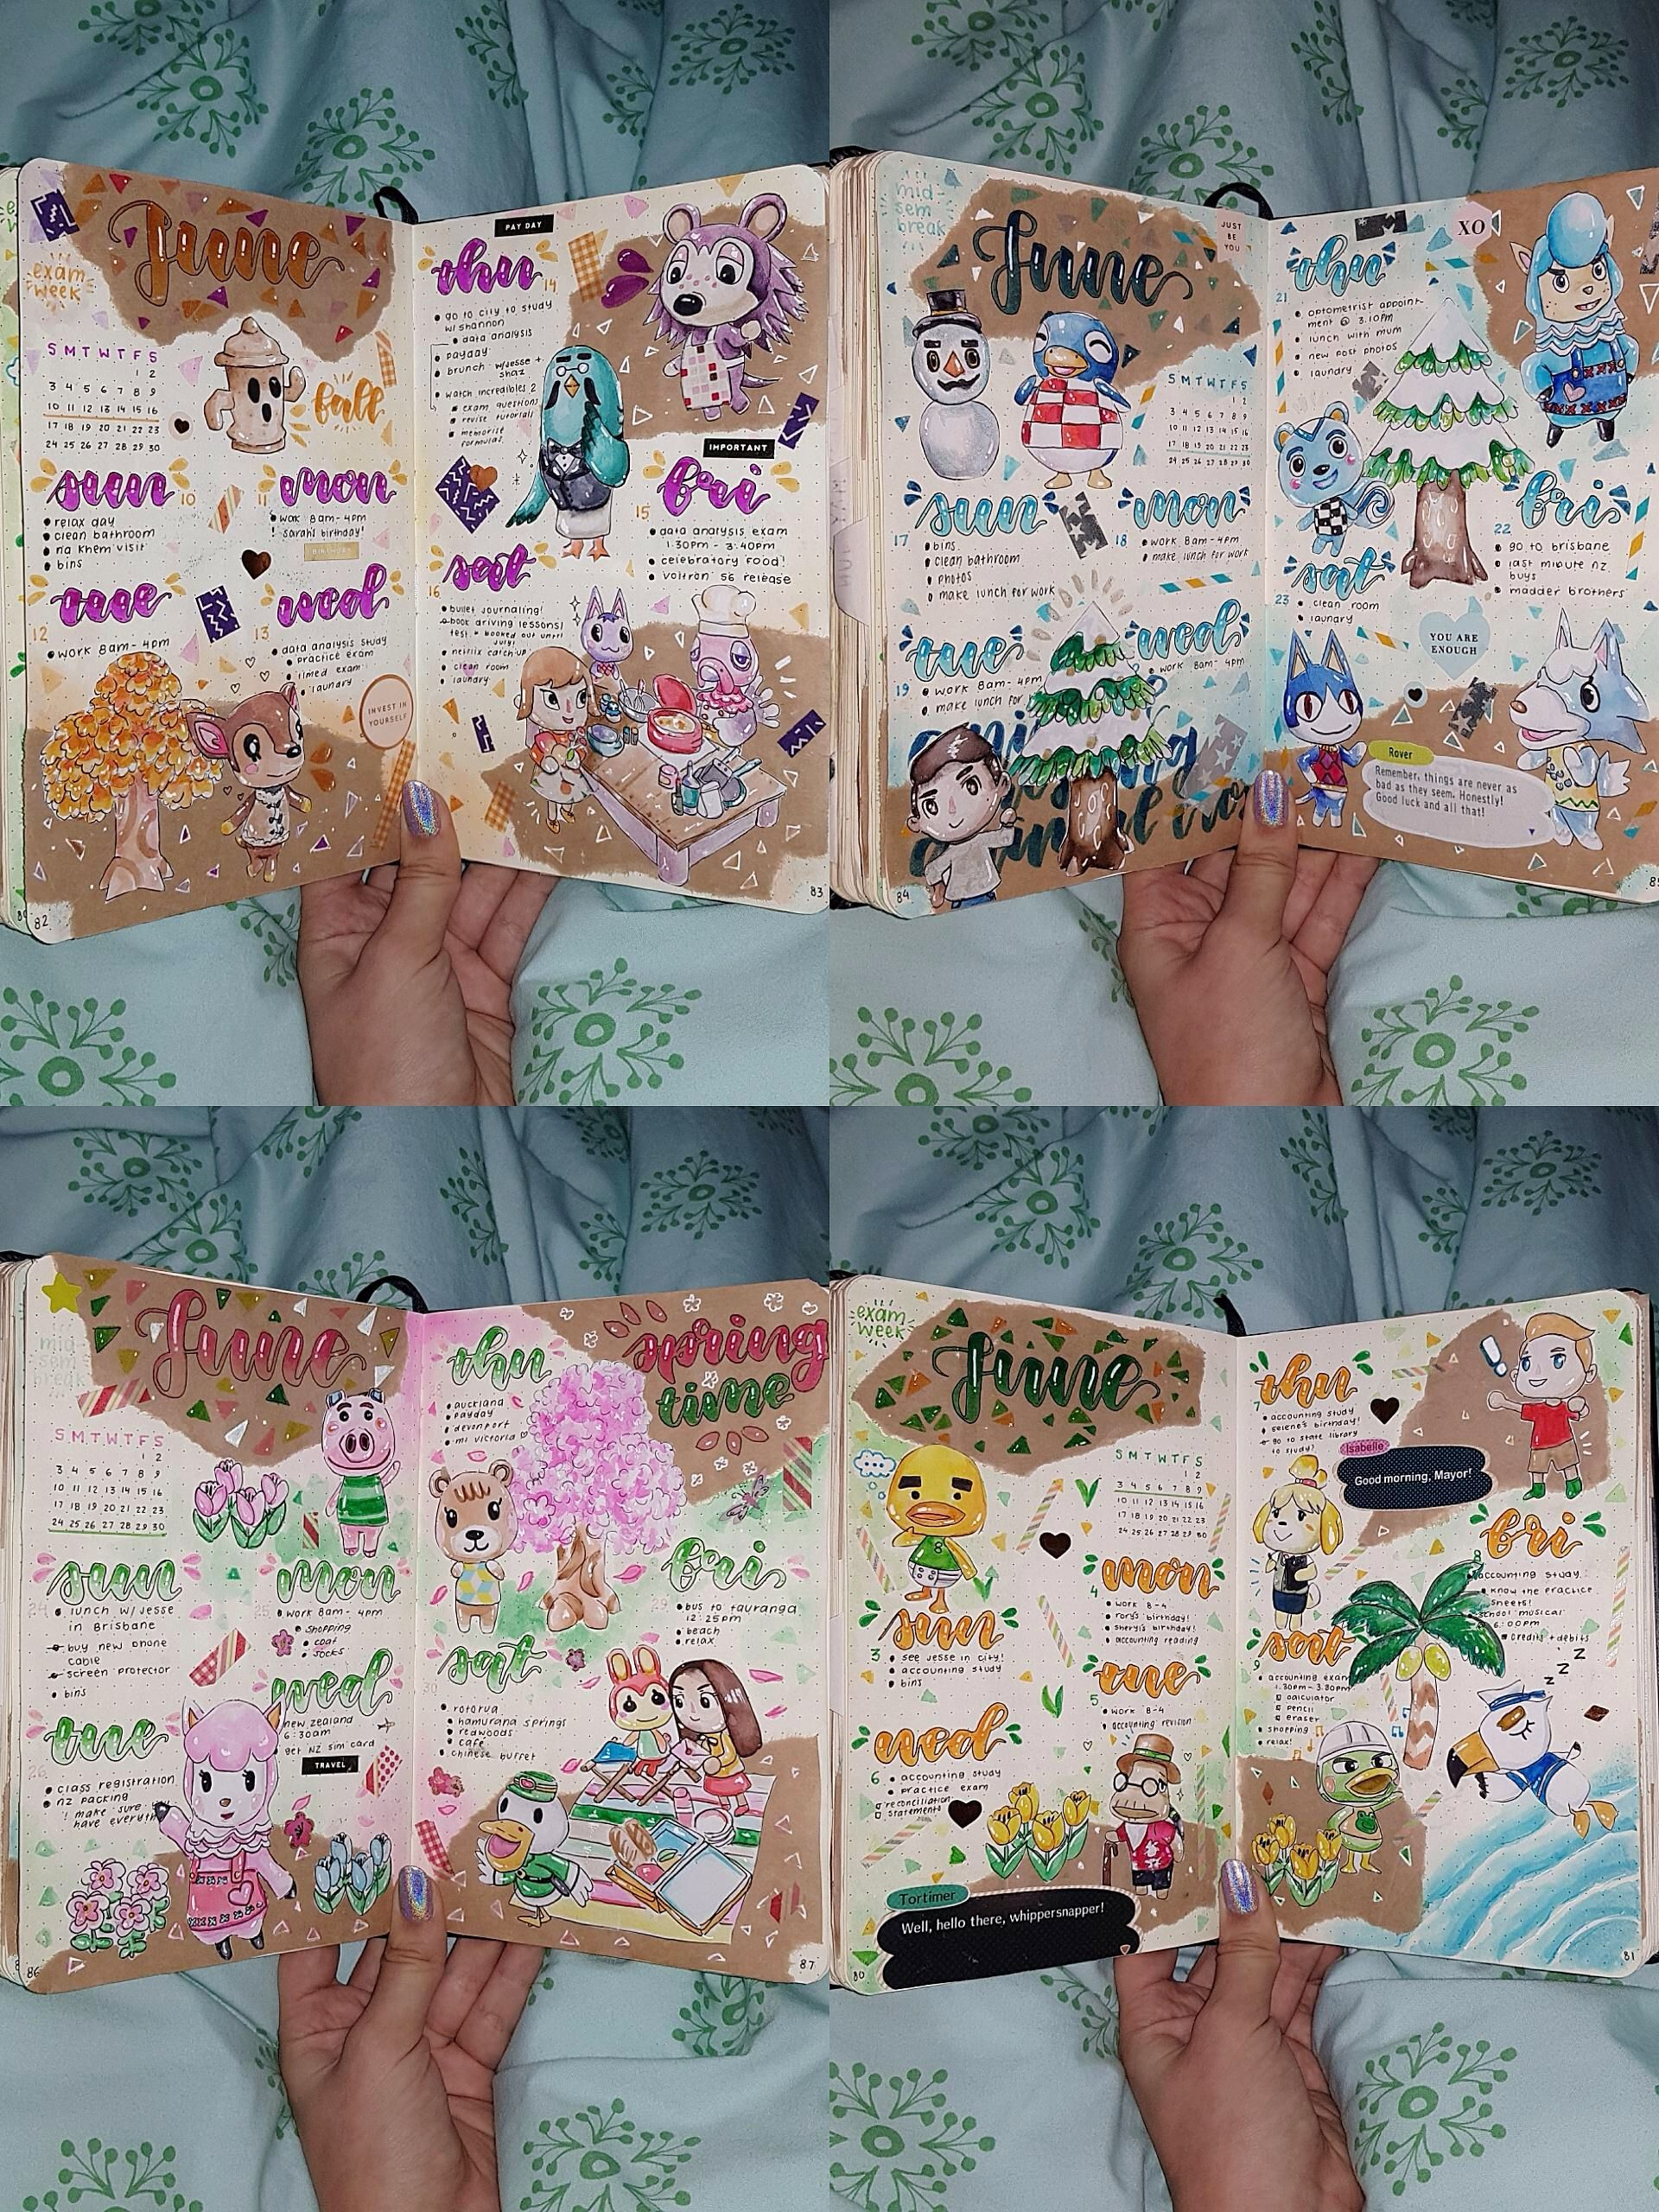 Animal Crossing Journal With Images Animal Crossing Animal